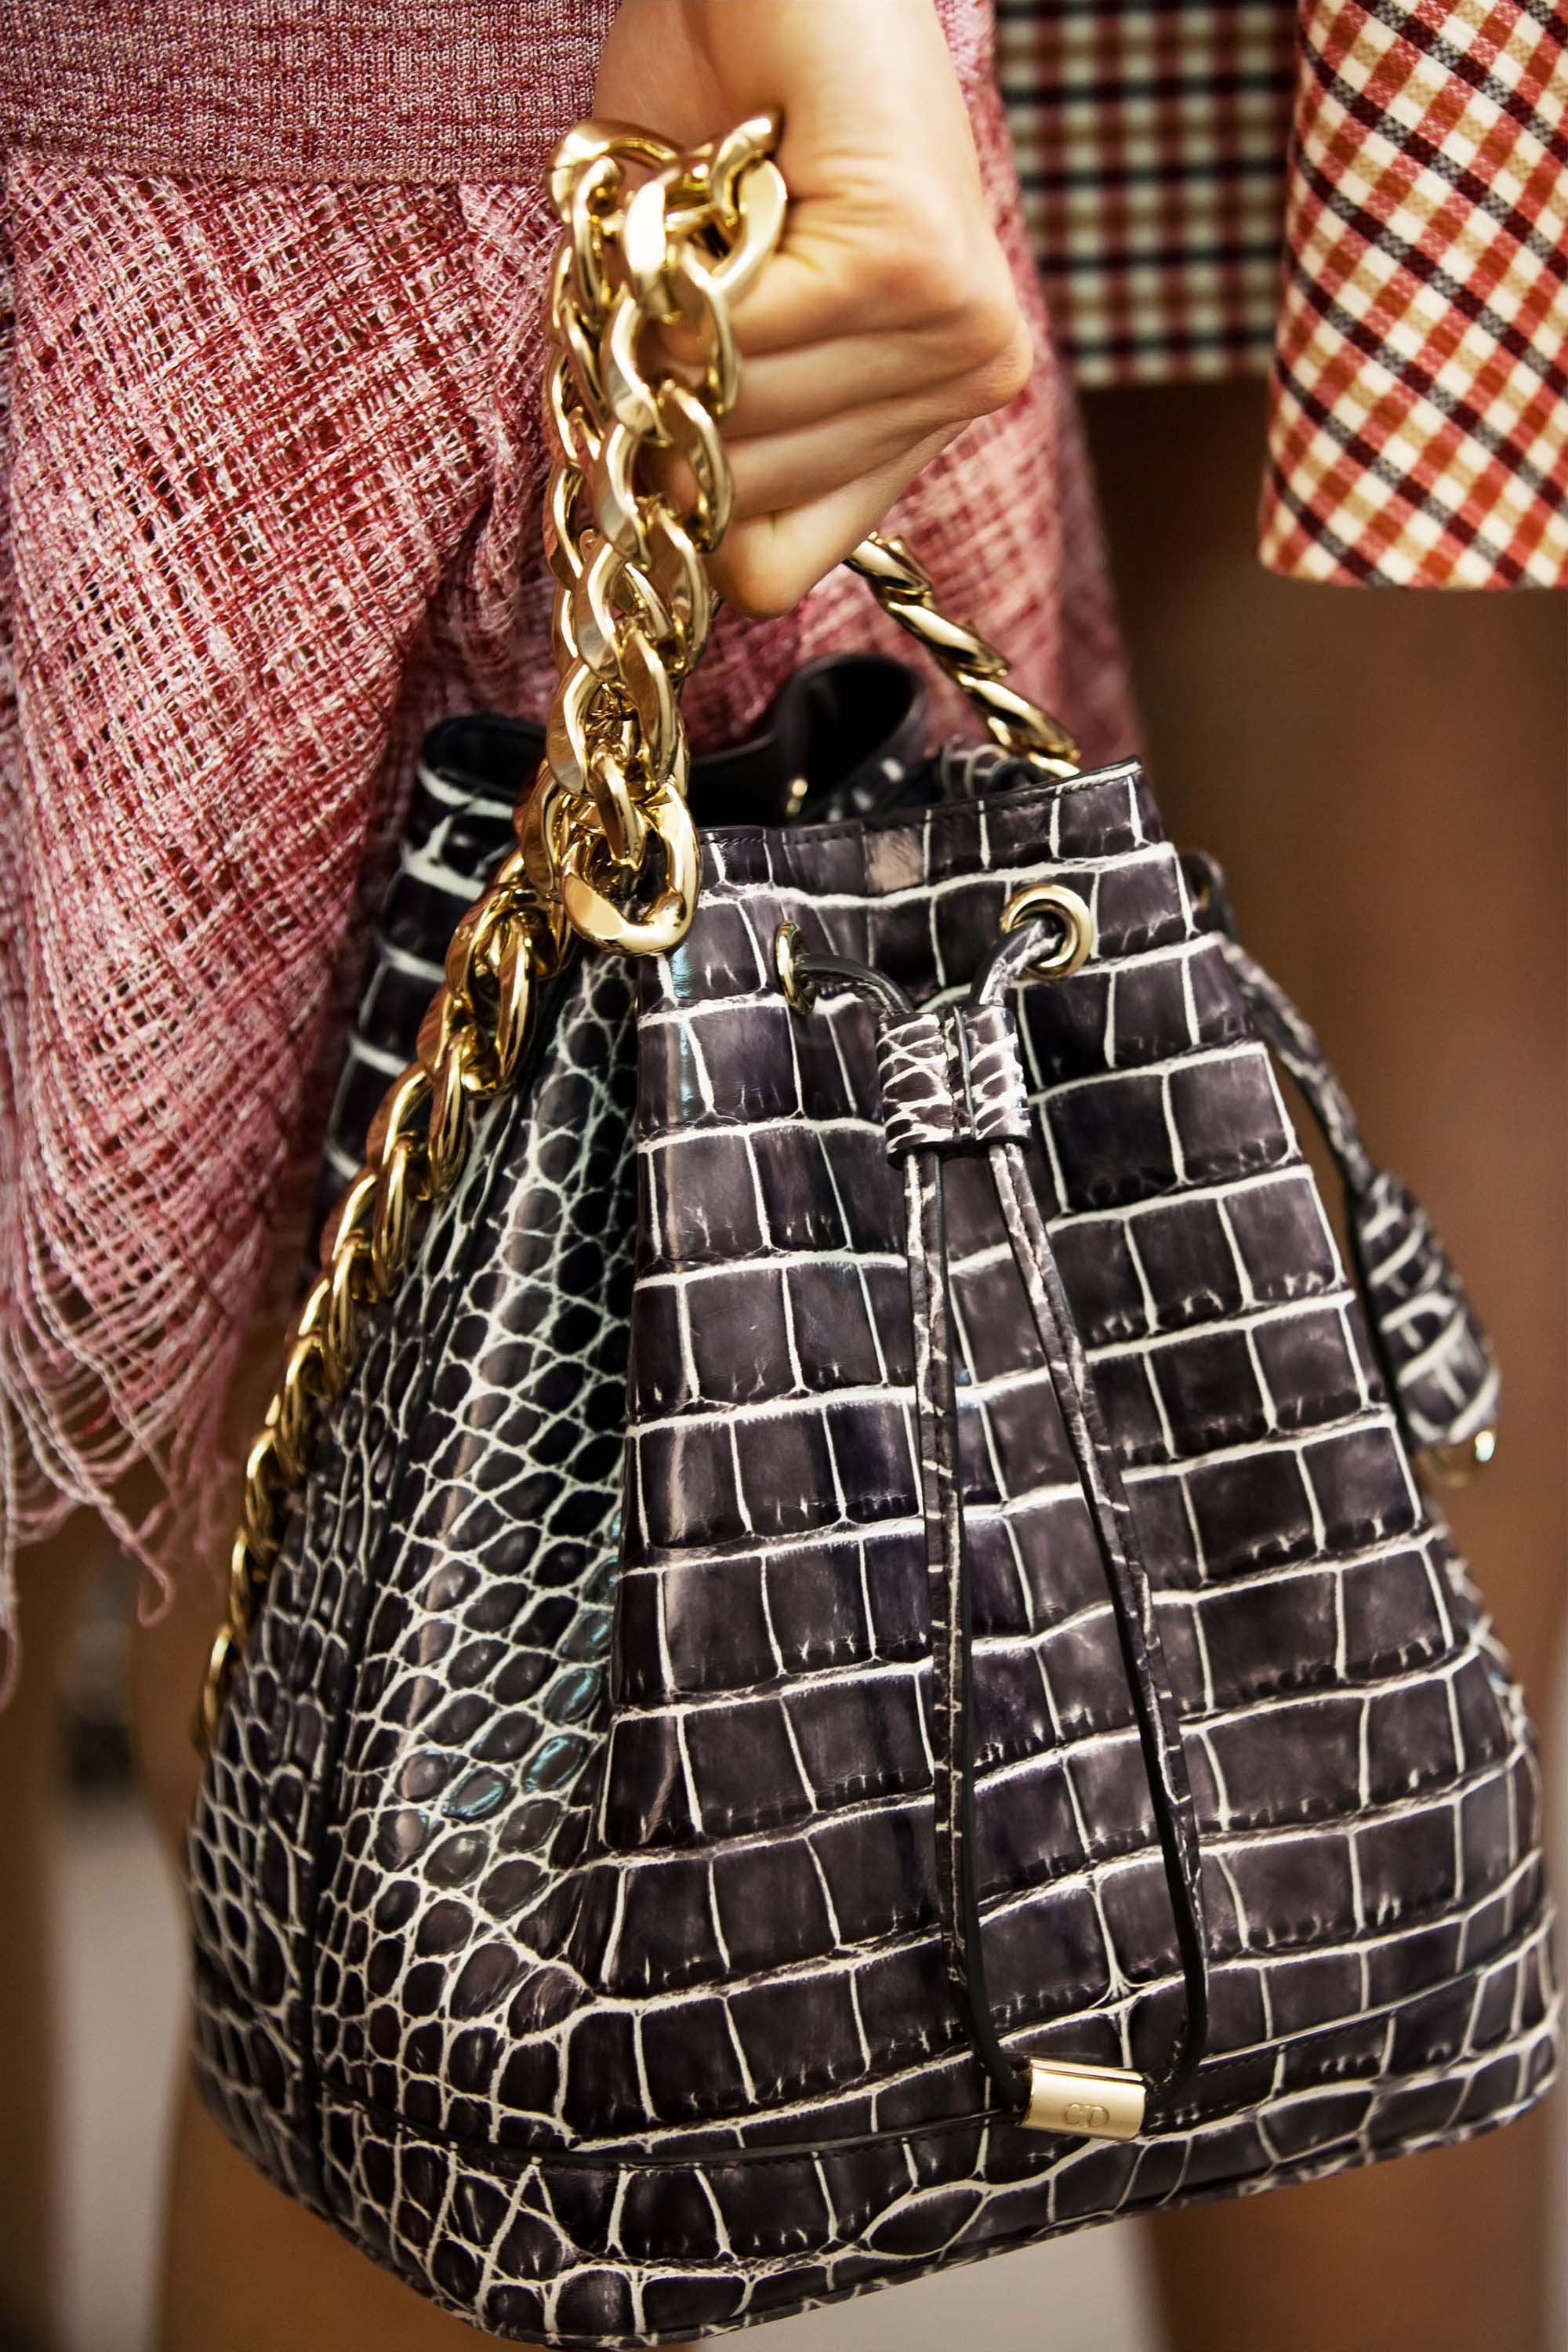 Dior Cruise 2016 Runway Bag Collection Featuring Chain Bucket Bag ... 9ea4729724